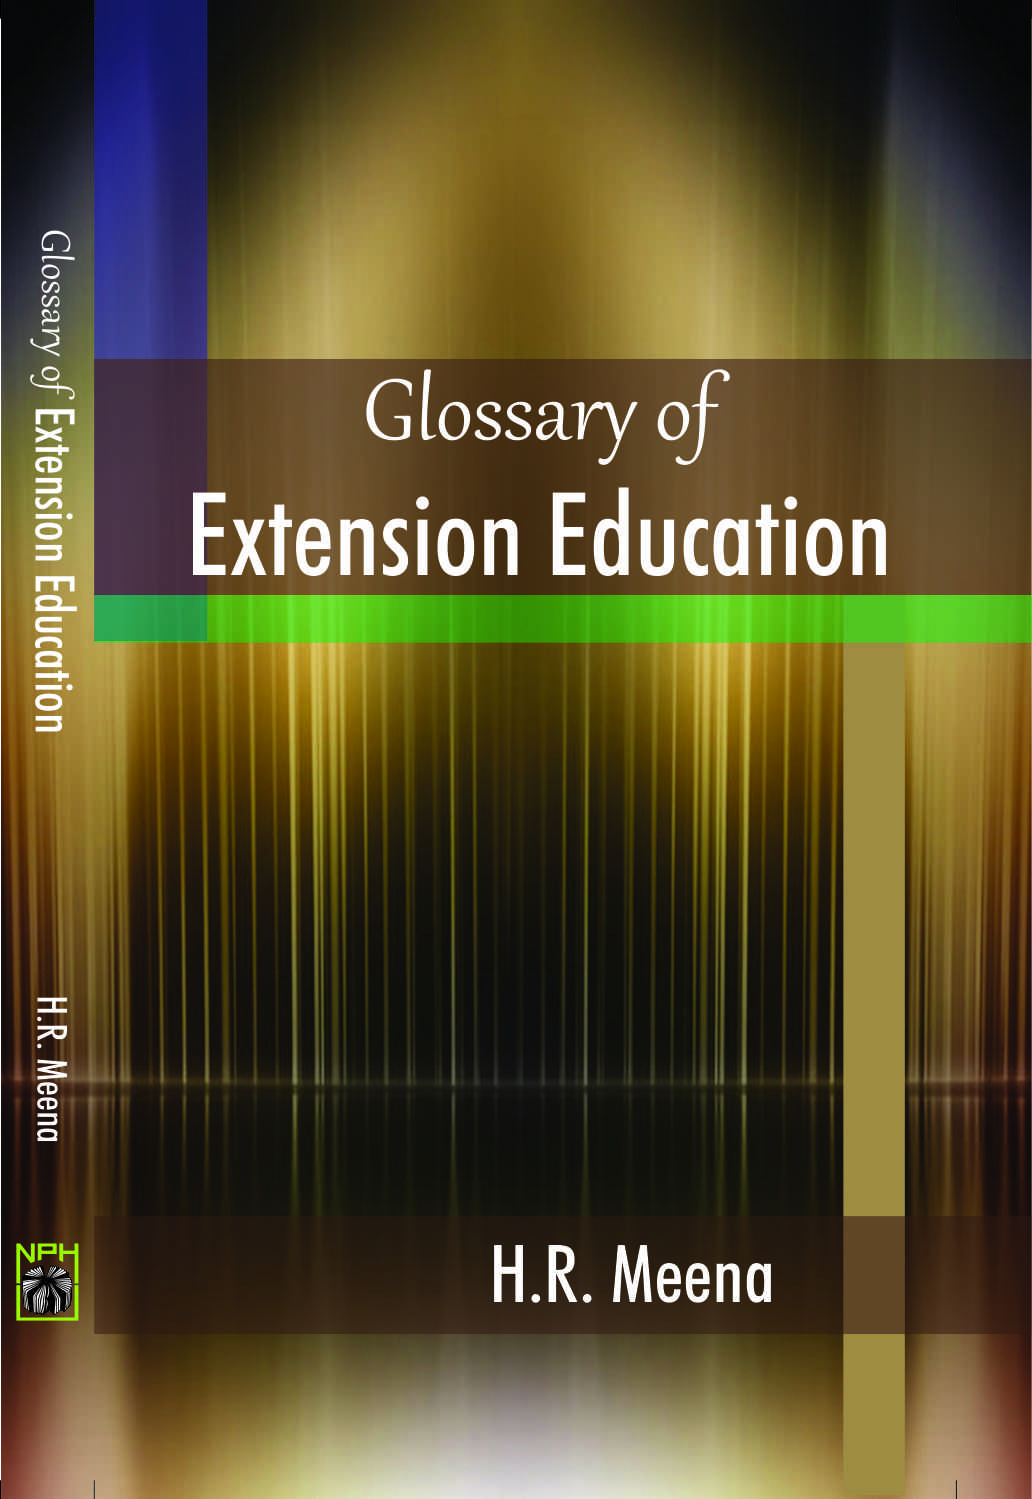 Glossary of Extension Education